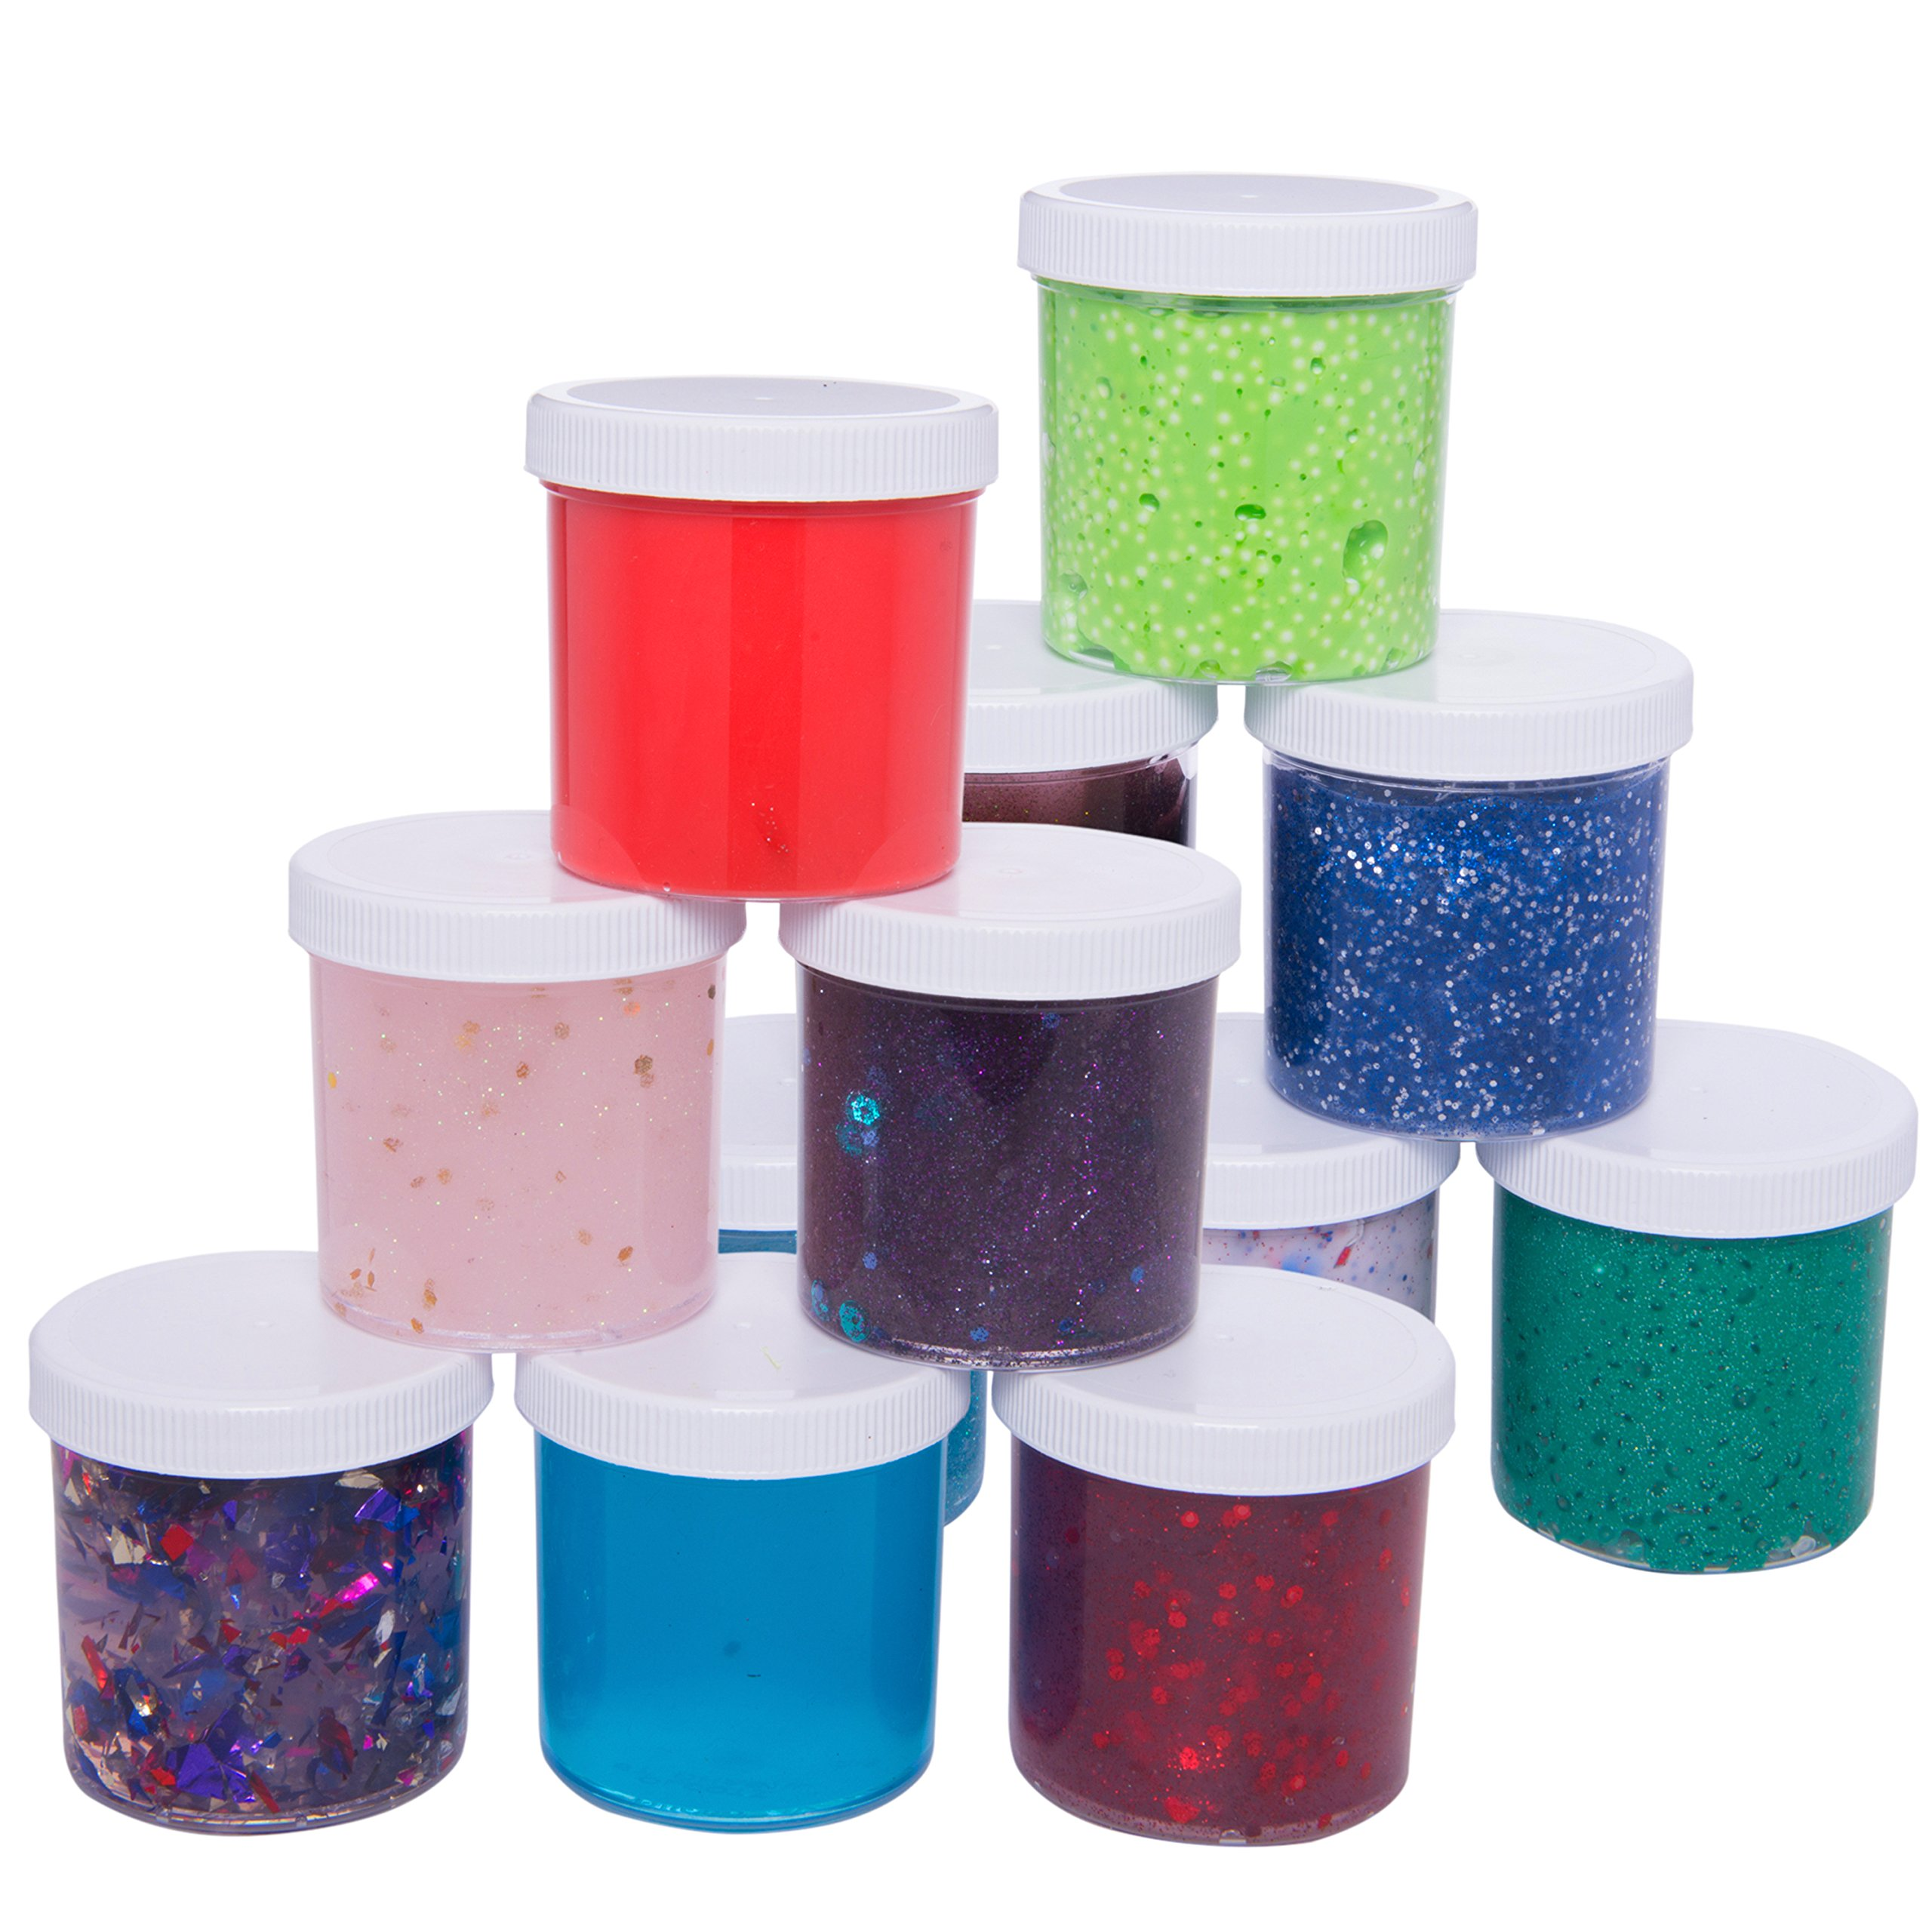 Slime Storage Jars 6oz (12 Pack) - Maddie Rae's Clear Containers For All Your Glue Putty Making